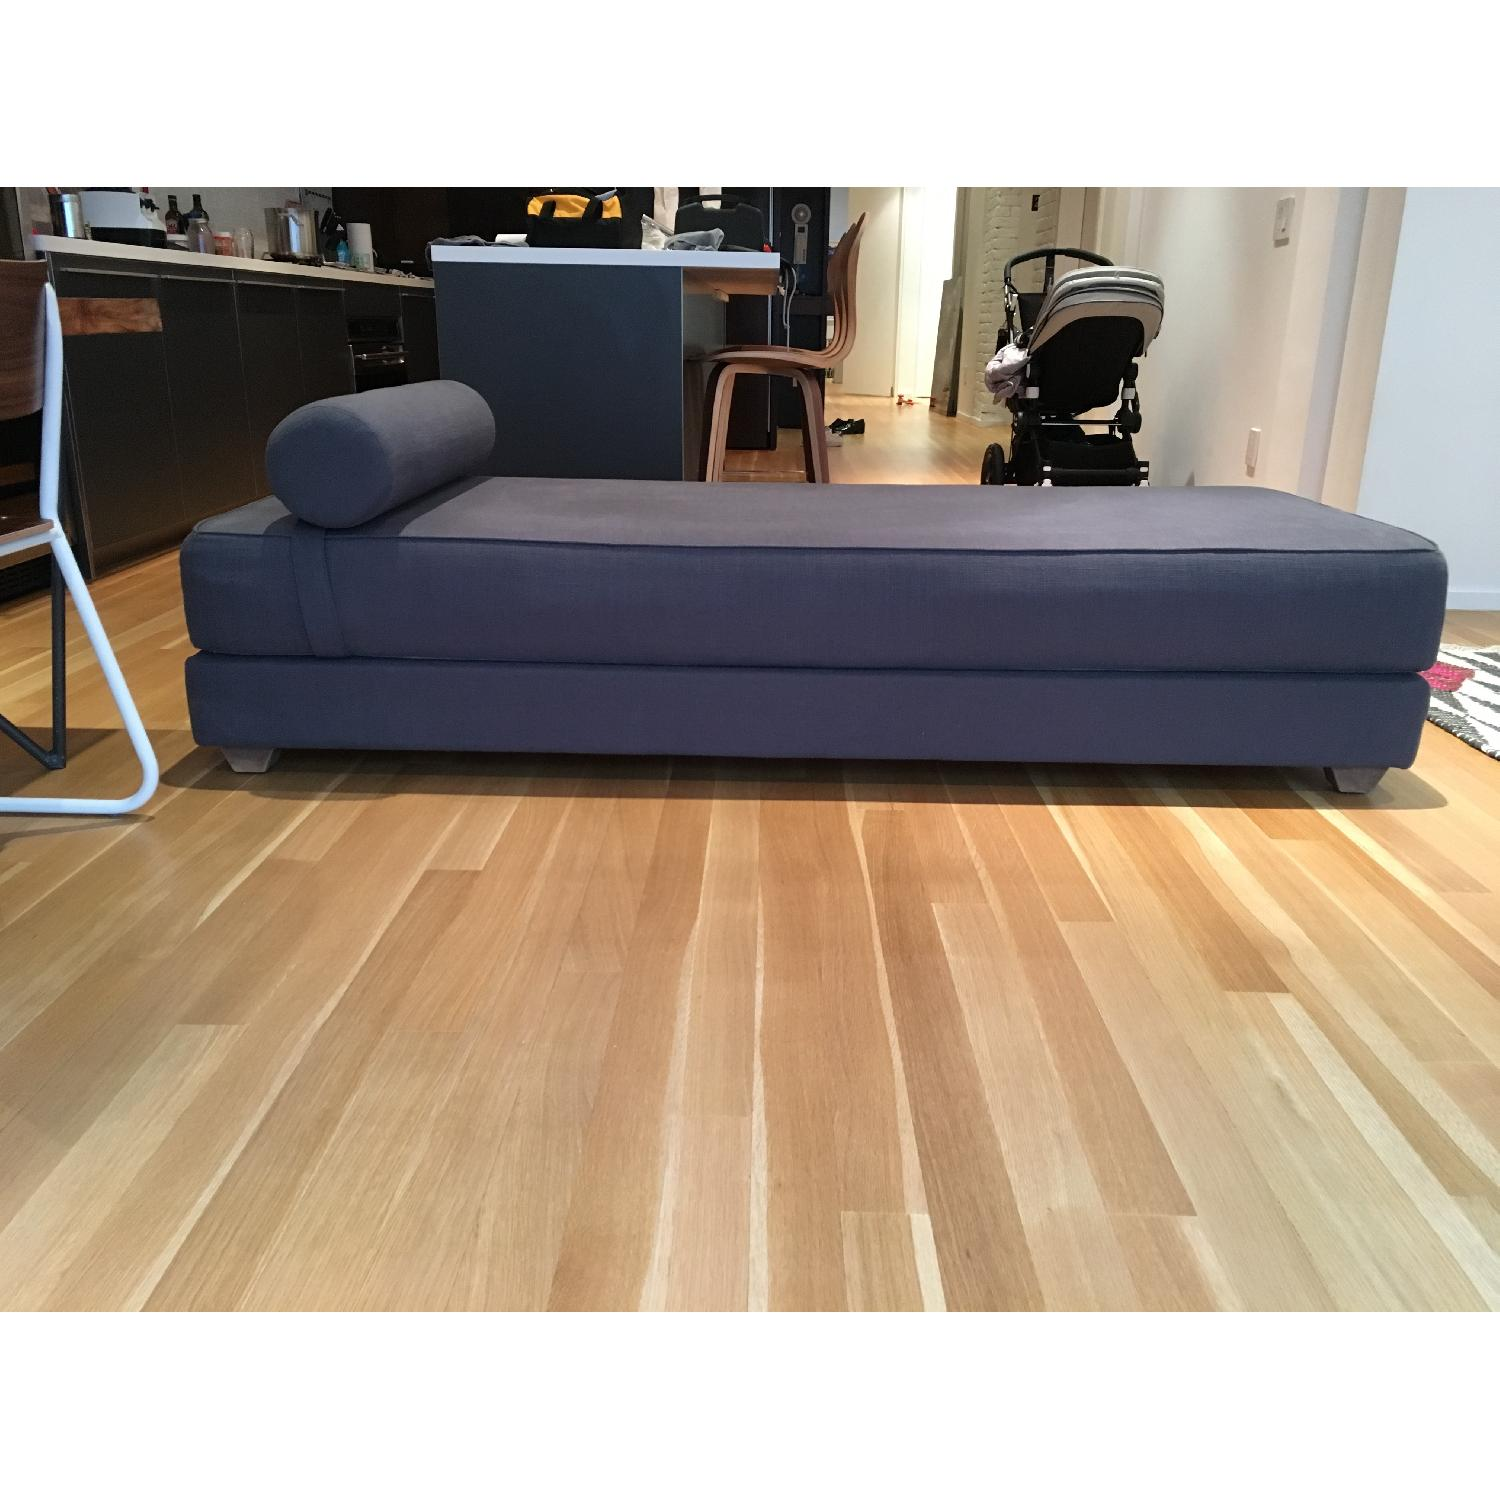 CB2 Lubi Sleeper Daybed - image-10